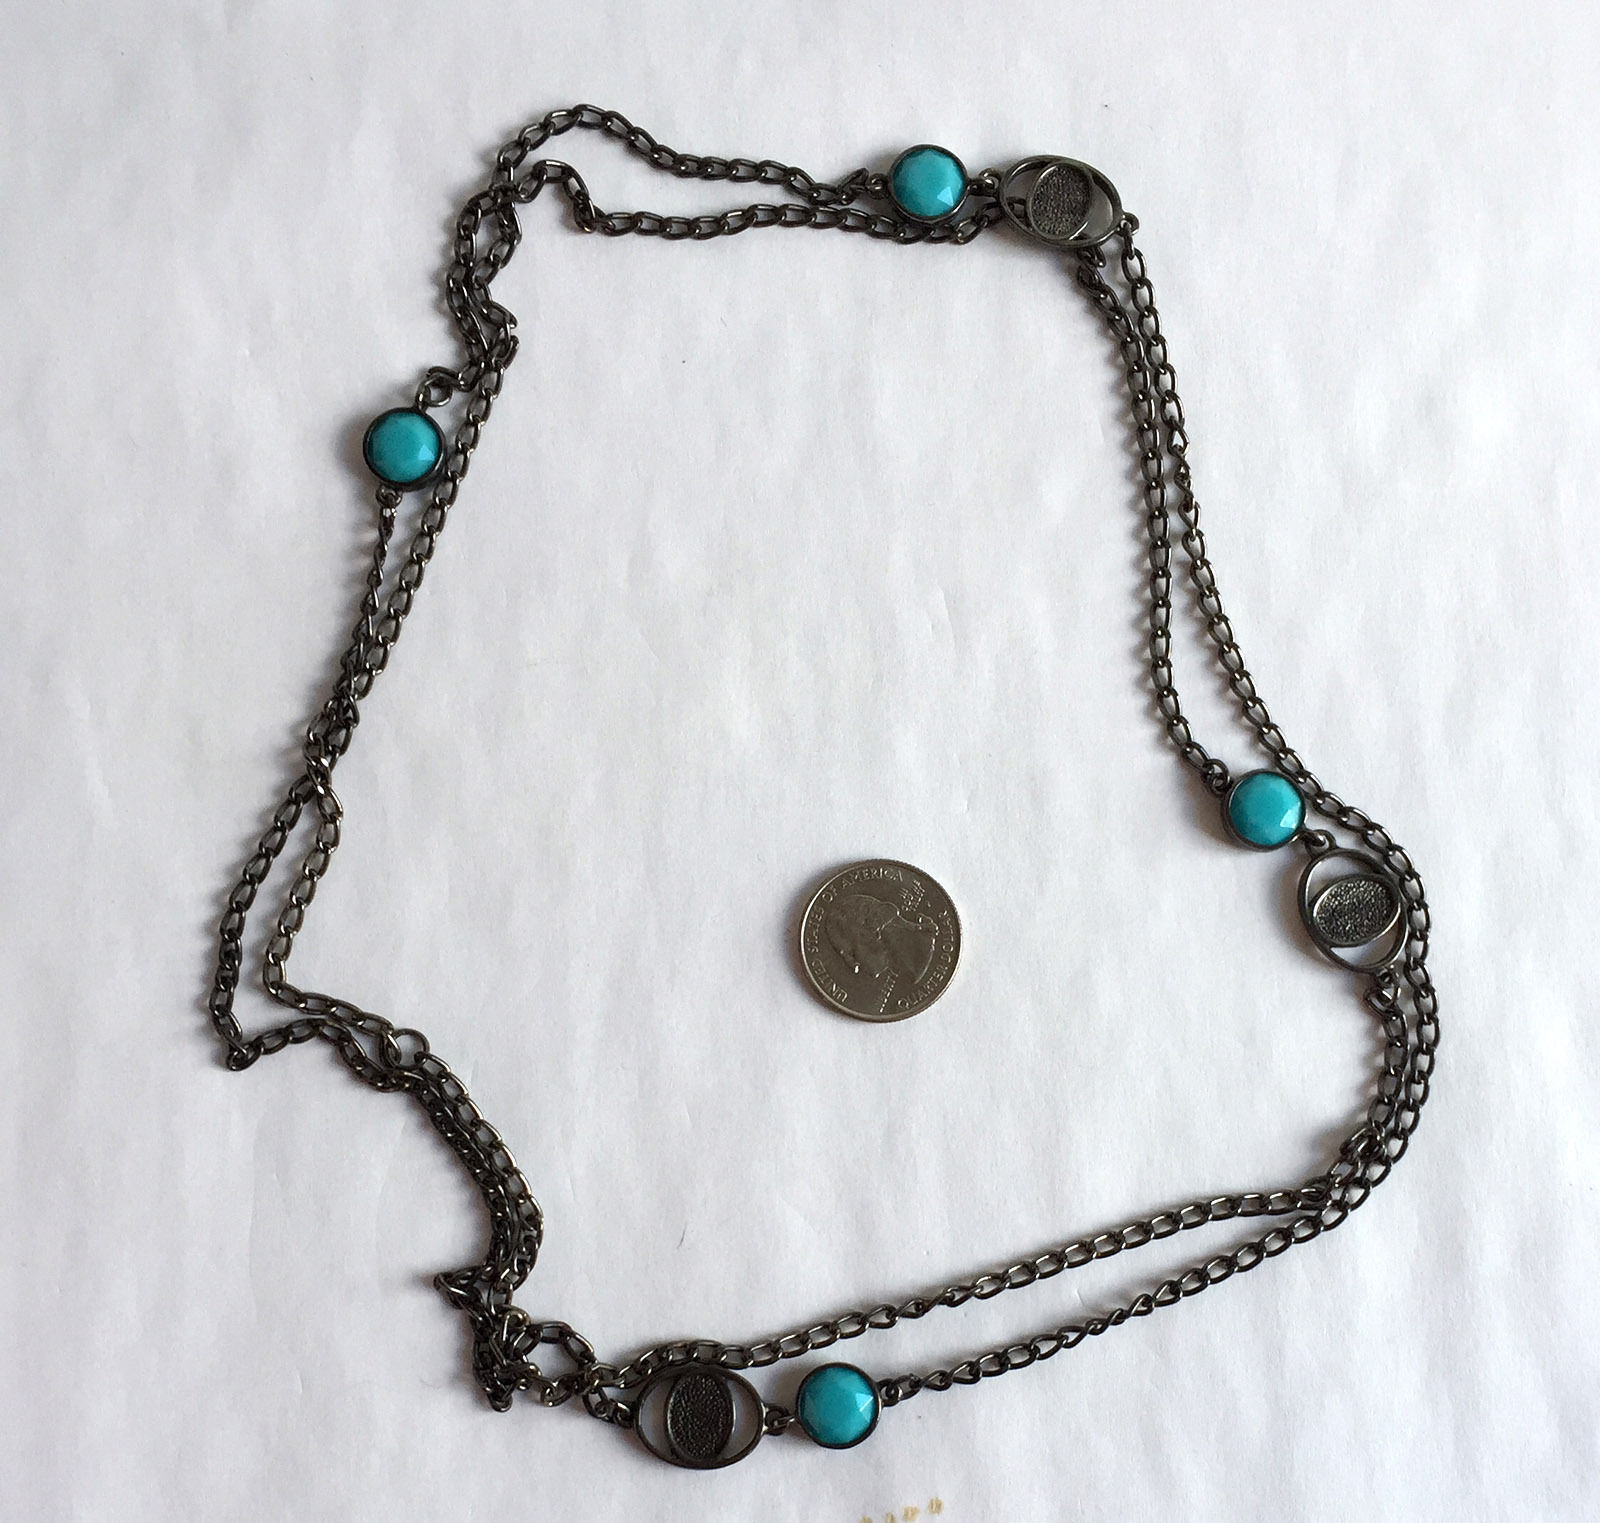 Dark Metal Chain with Blue Acrylic Accents Long Necklace 52 inches